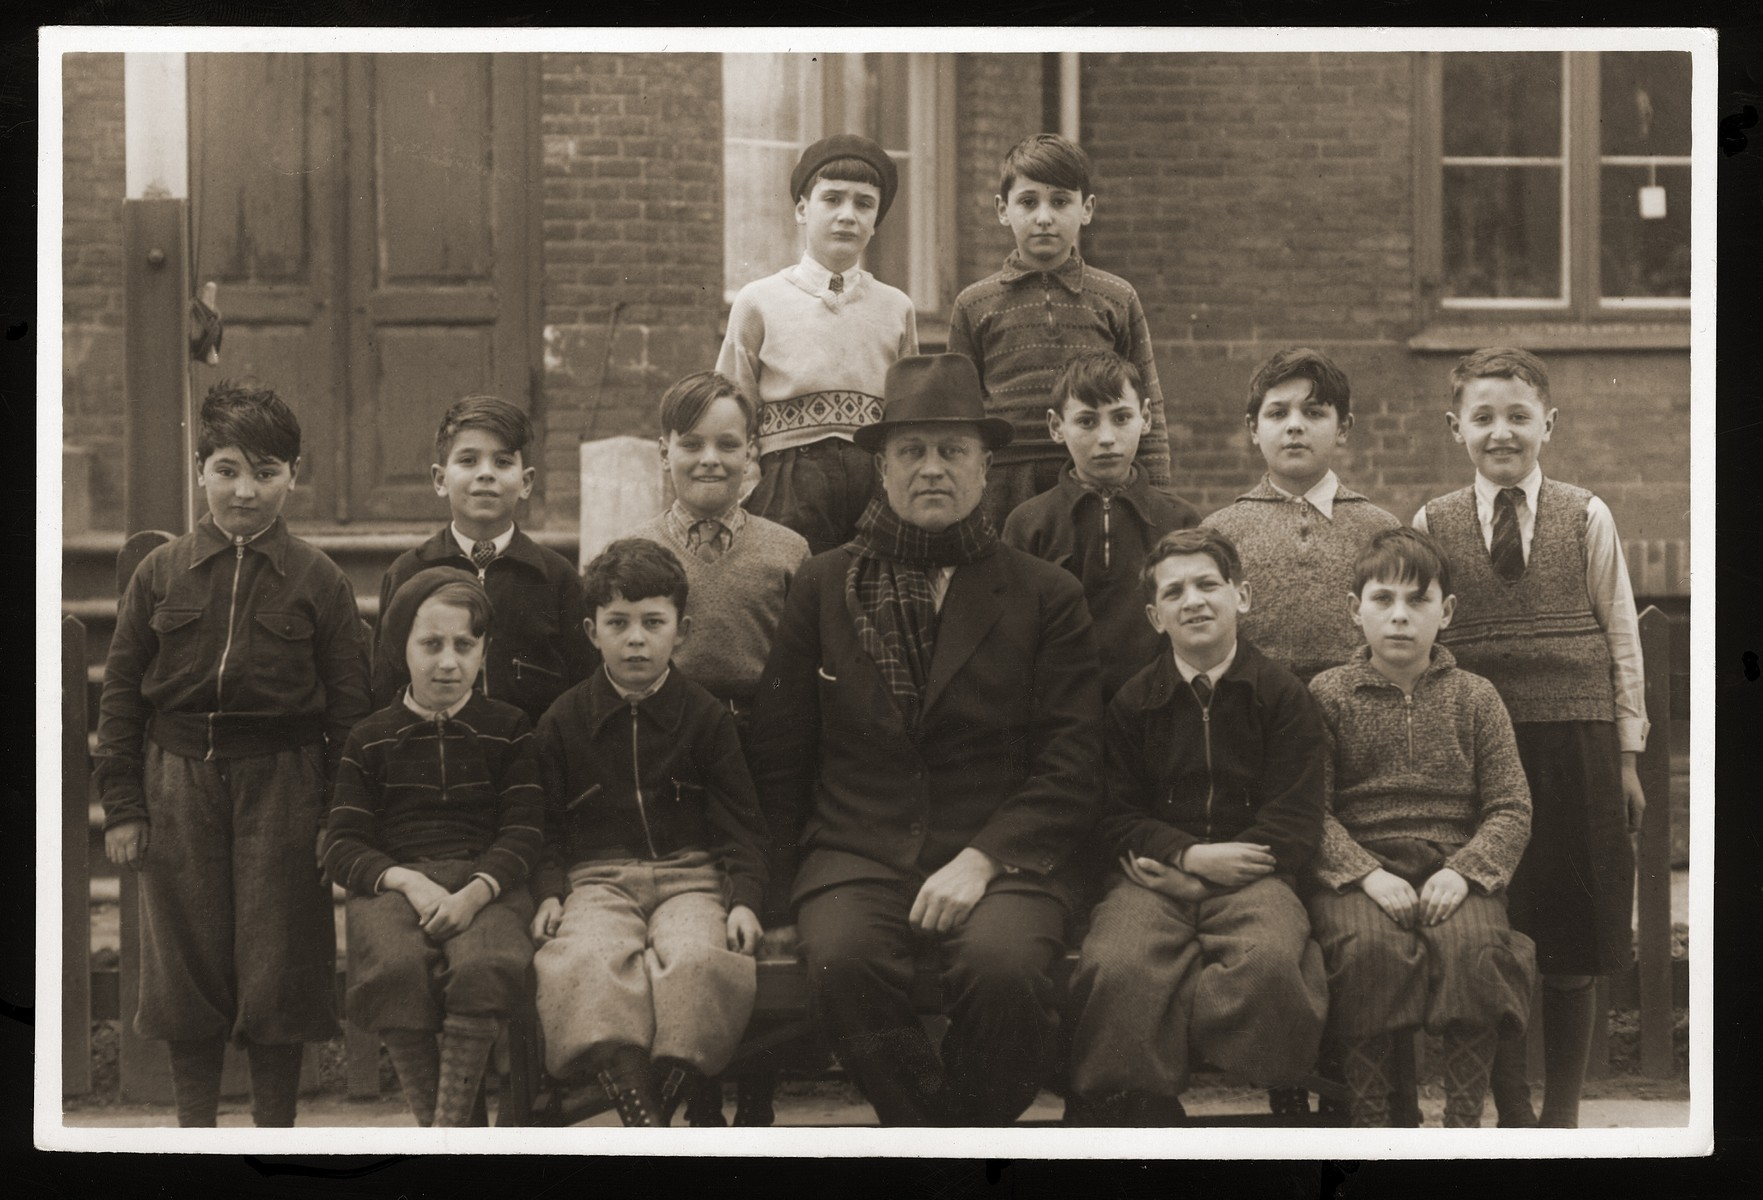 Class of the Mosaik Boys School in Copenhagen.    In the center is the principal, Harry Pihler.  Among the students pictured are front row: Harry Rubin (far left); second row: James Feder (far left), Katznelson (second from left), Skolnik (third from right), Milan Goldberger (far right); third row: Marcus Jakubson (left).   The Mosaik School for Boys and the Caroline School for Girls were established in the beginning of the nineteenth century for the purpose of acculturating the children of Russian Jewish immigrants into Danish culture.  Though most of the teachers were not Jewish, the school also taught Jewish history and religion.